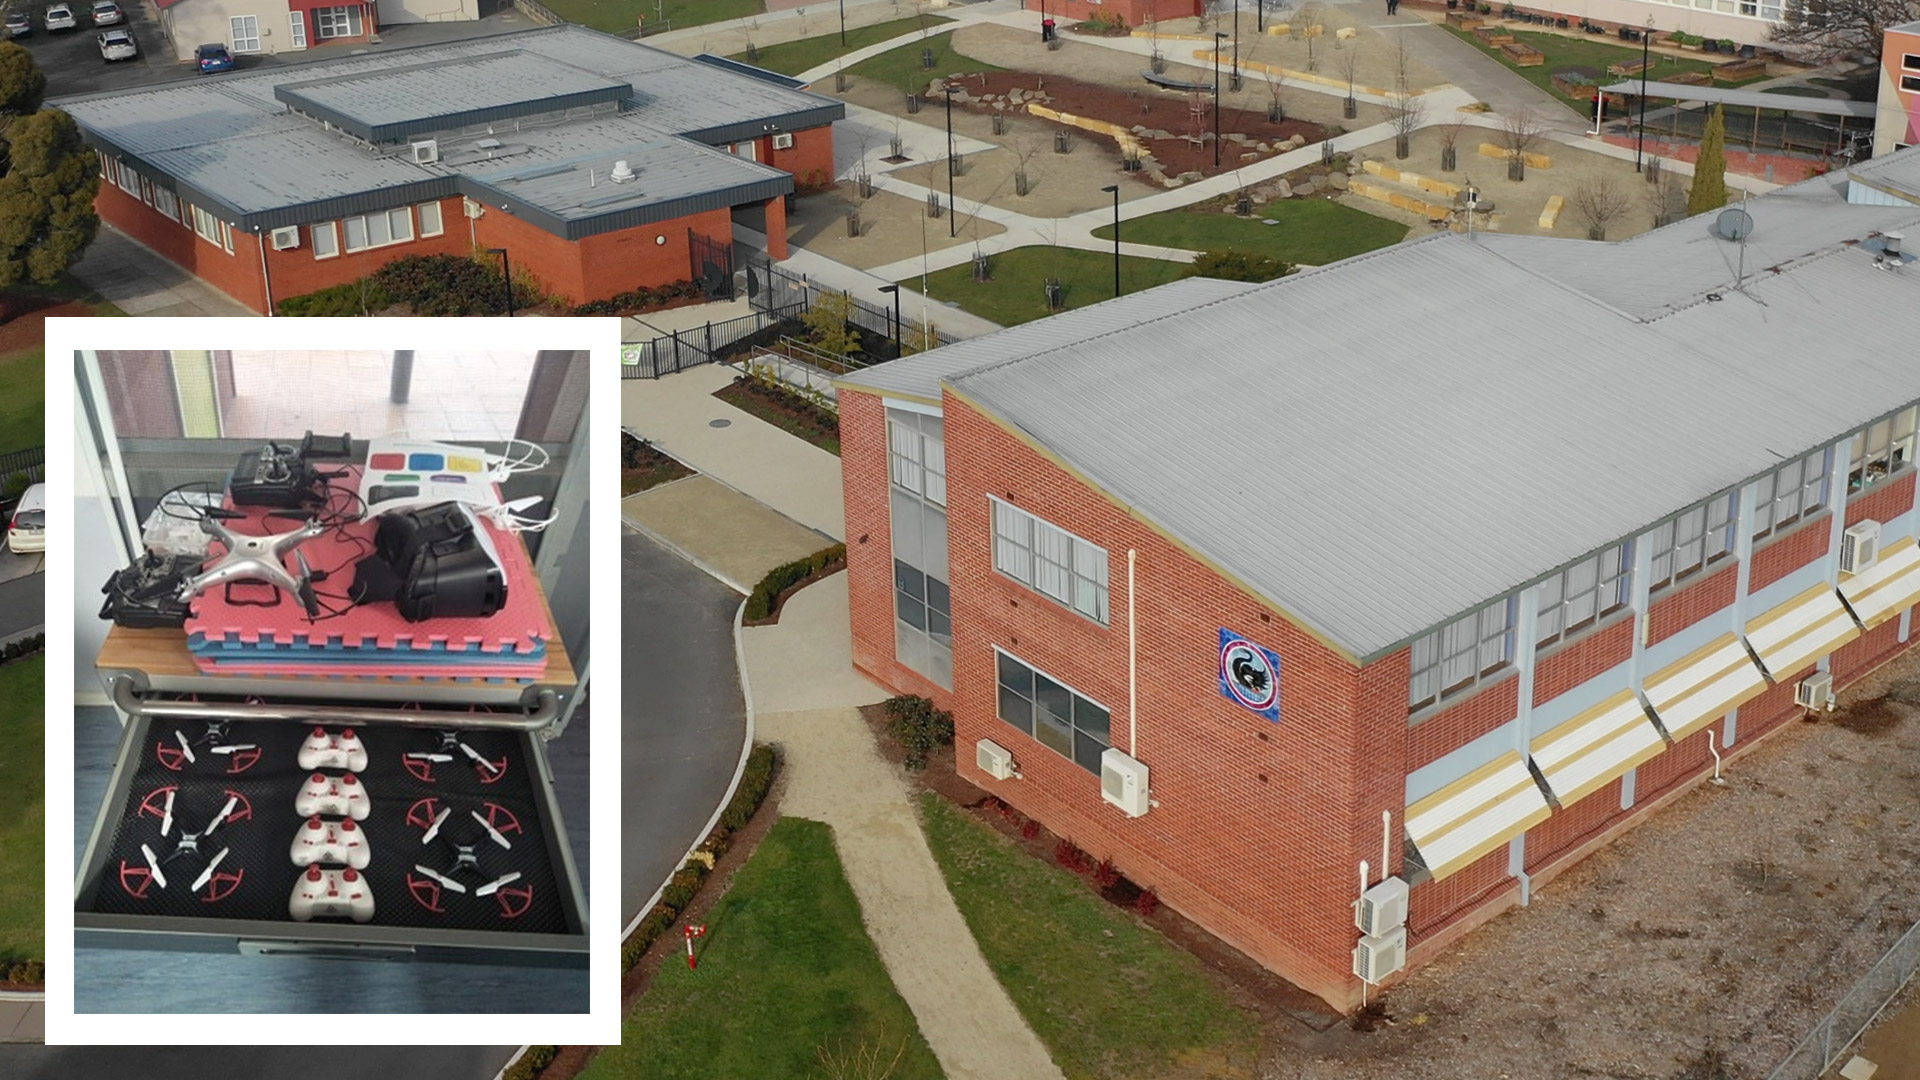 Drones are an important aspect of STEM studies at New Norfolk High School